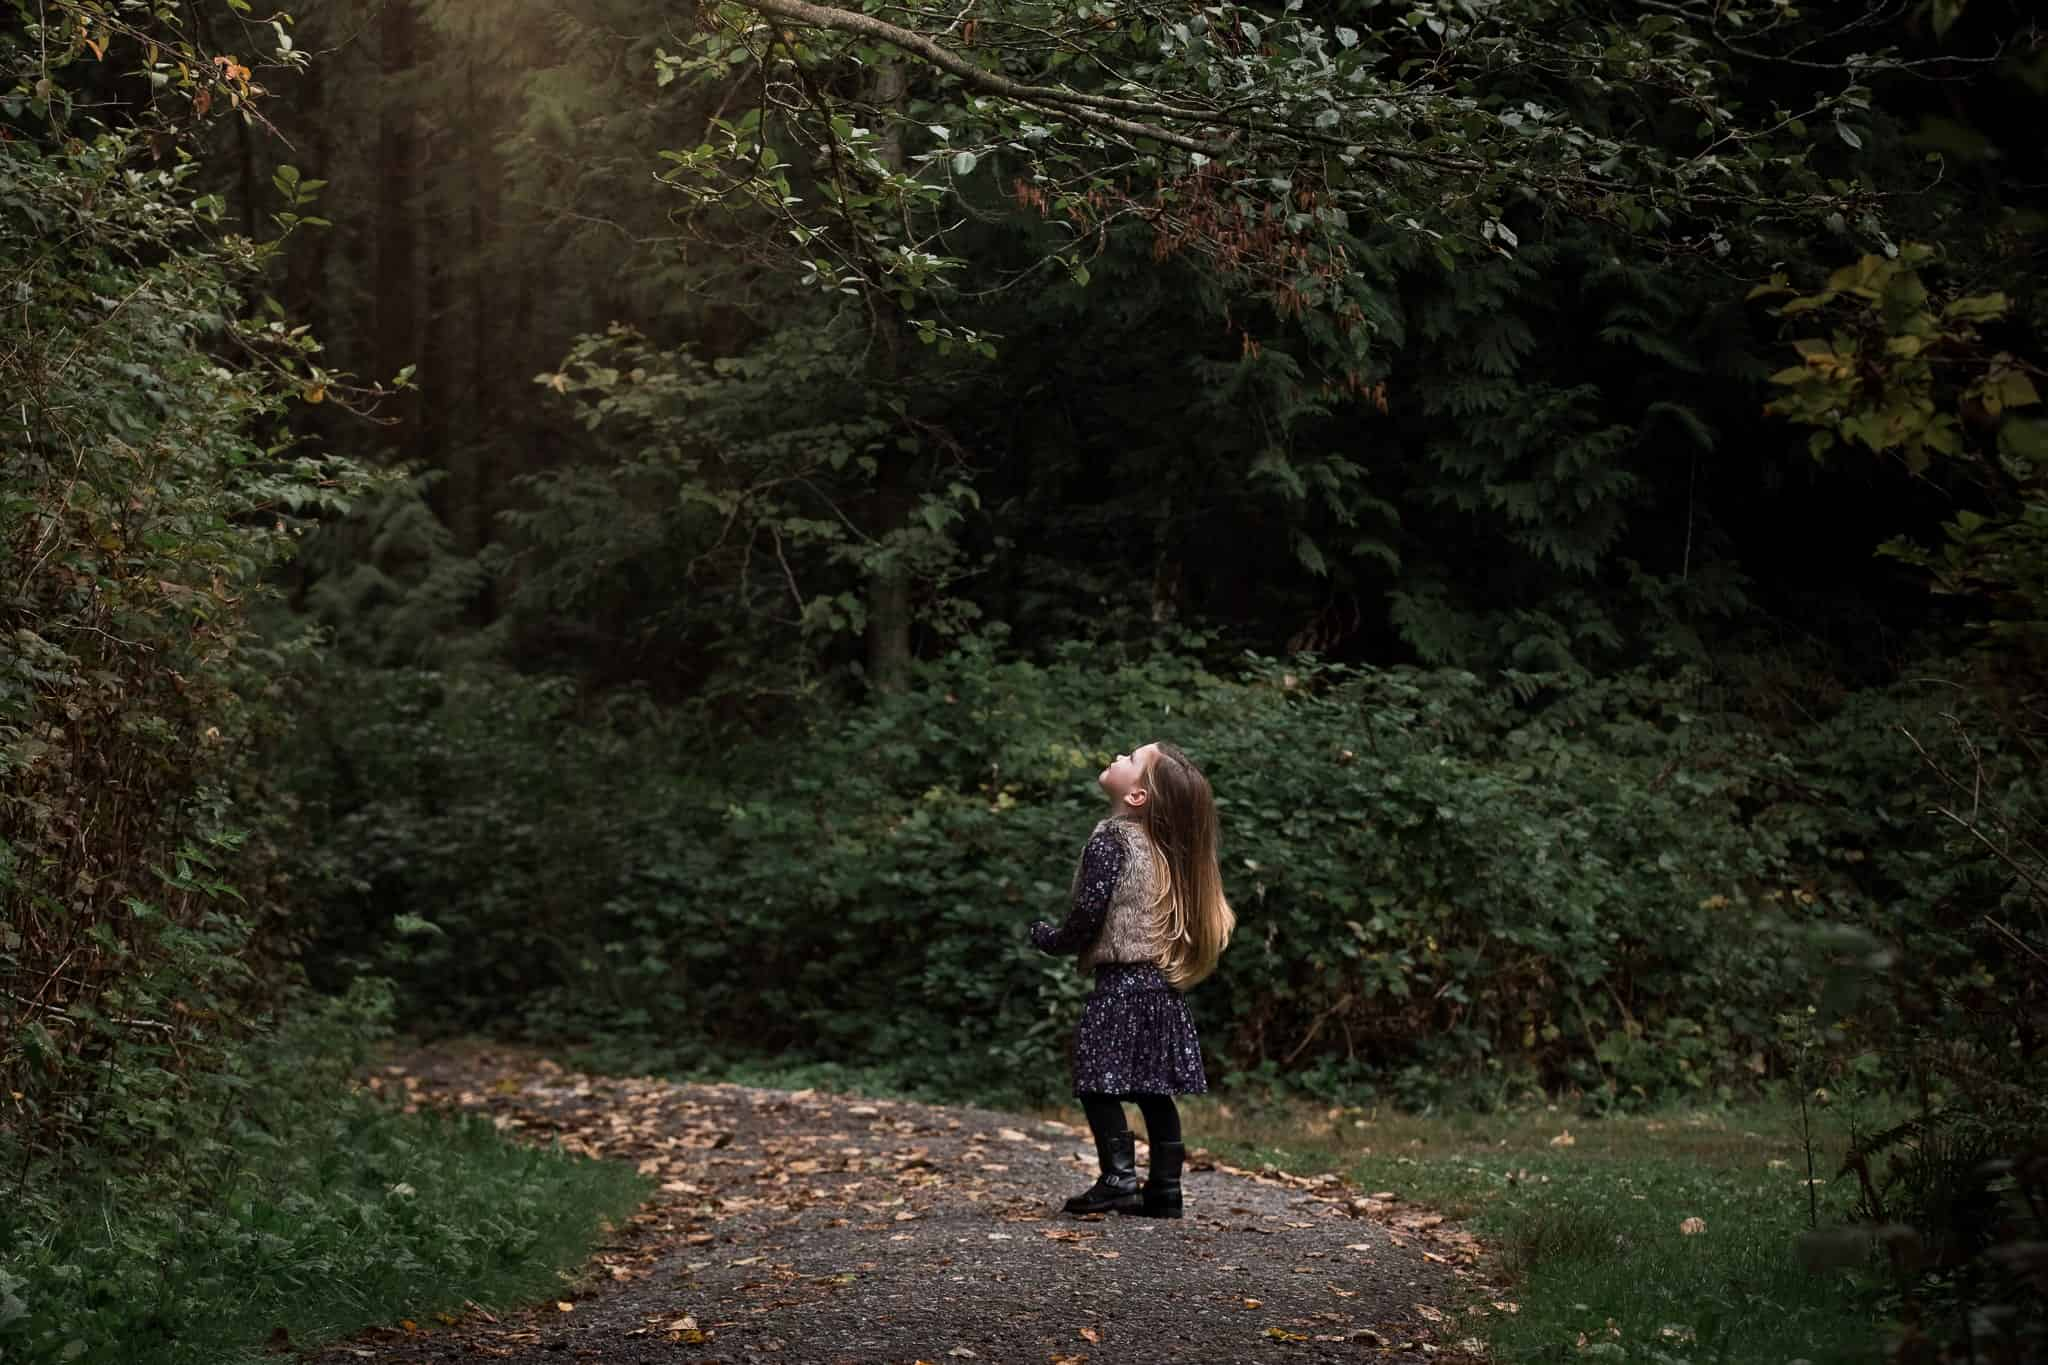 littler girl on a forest path looking up into the trees